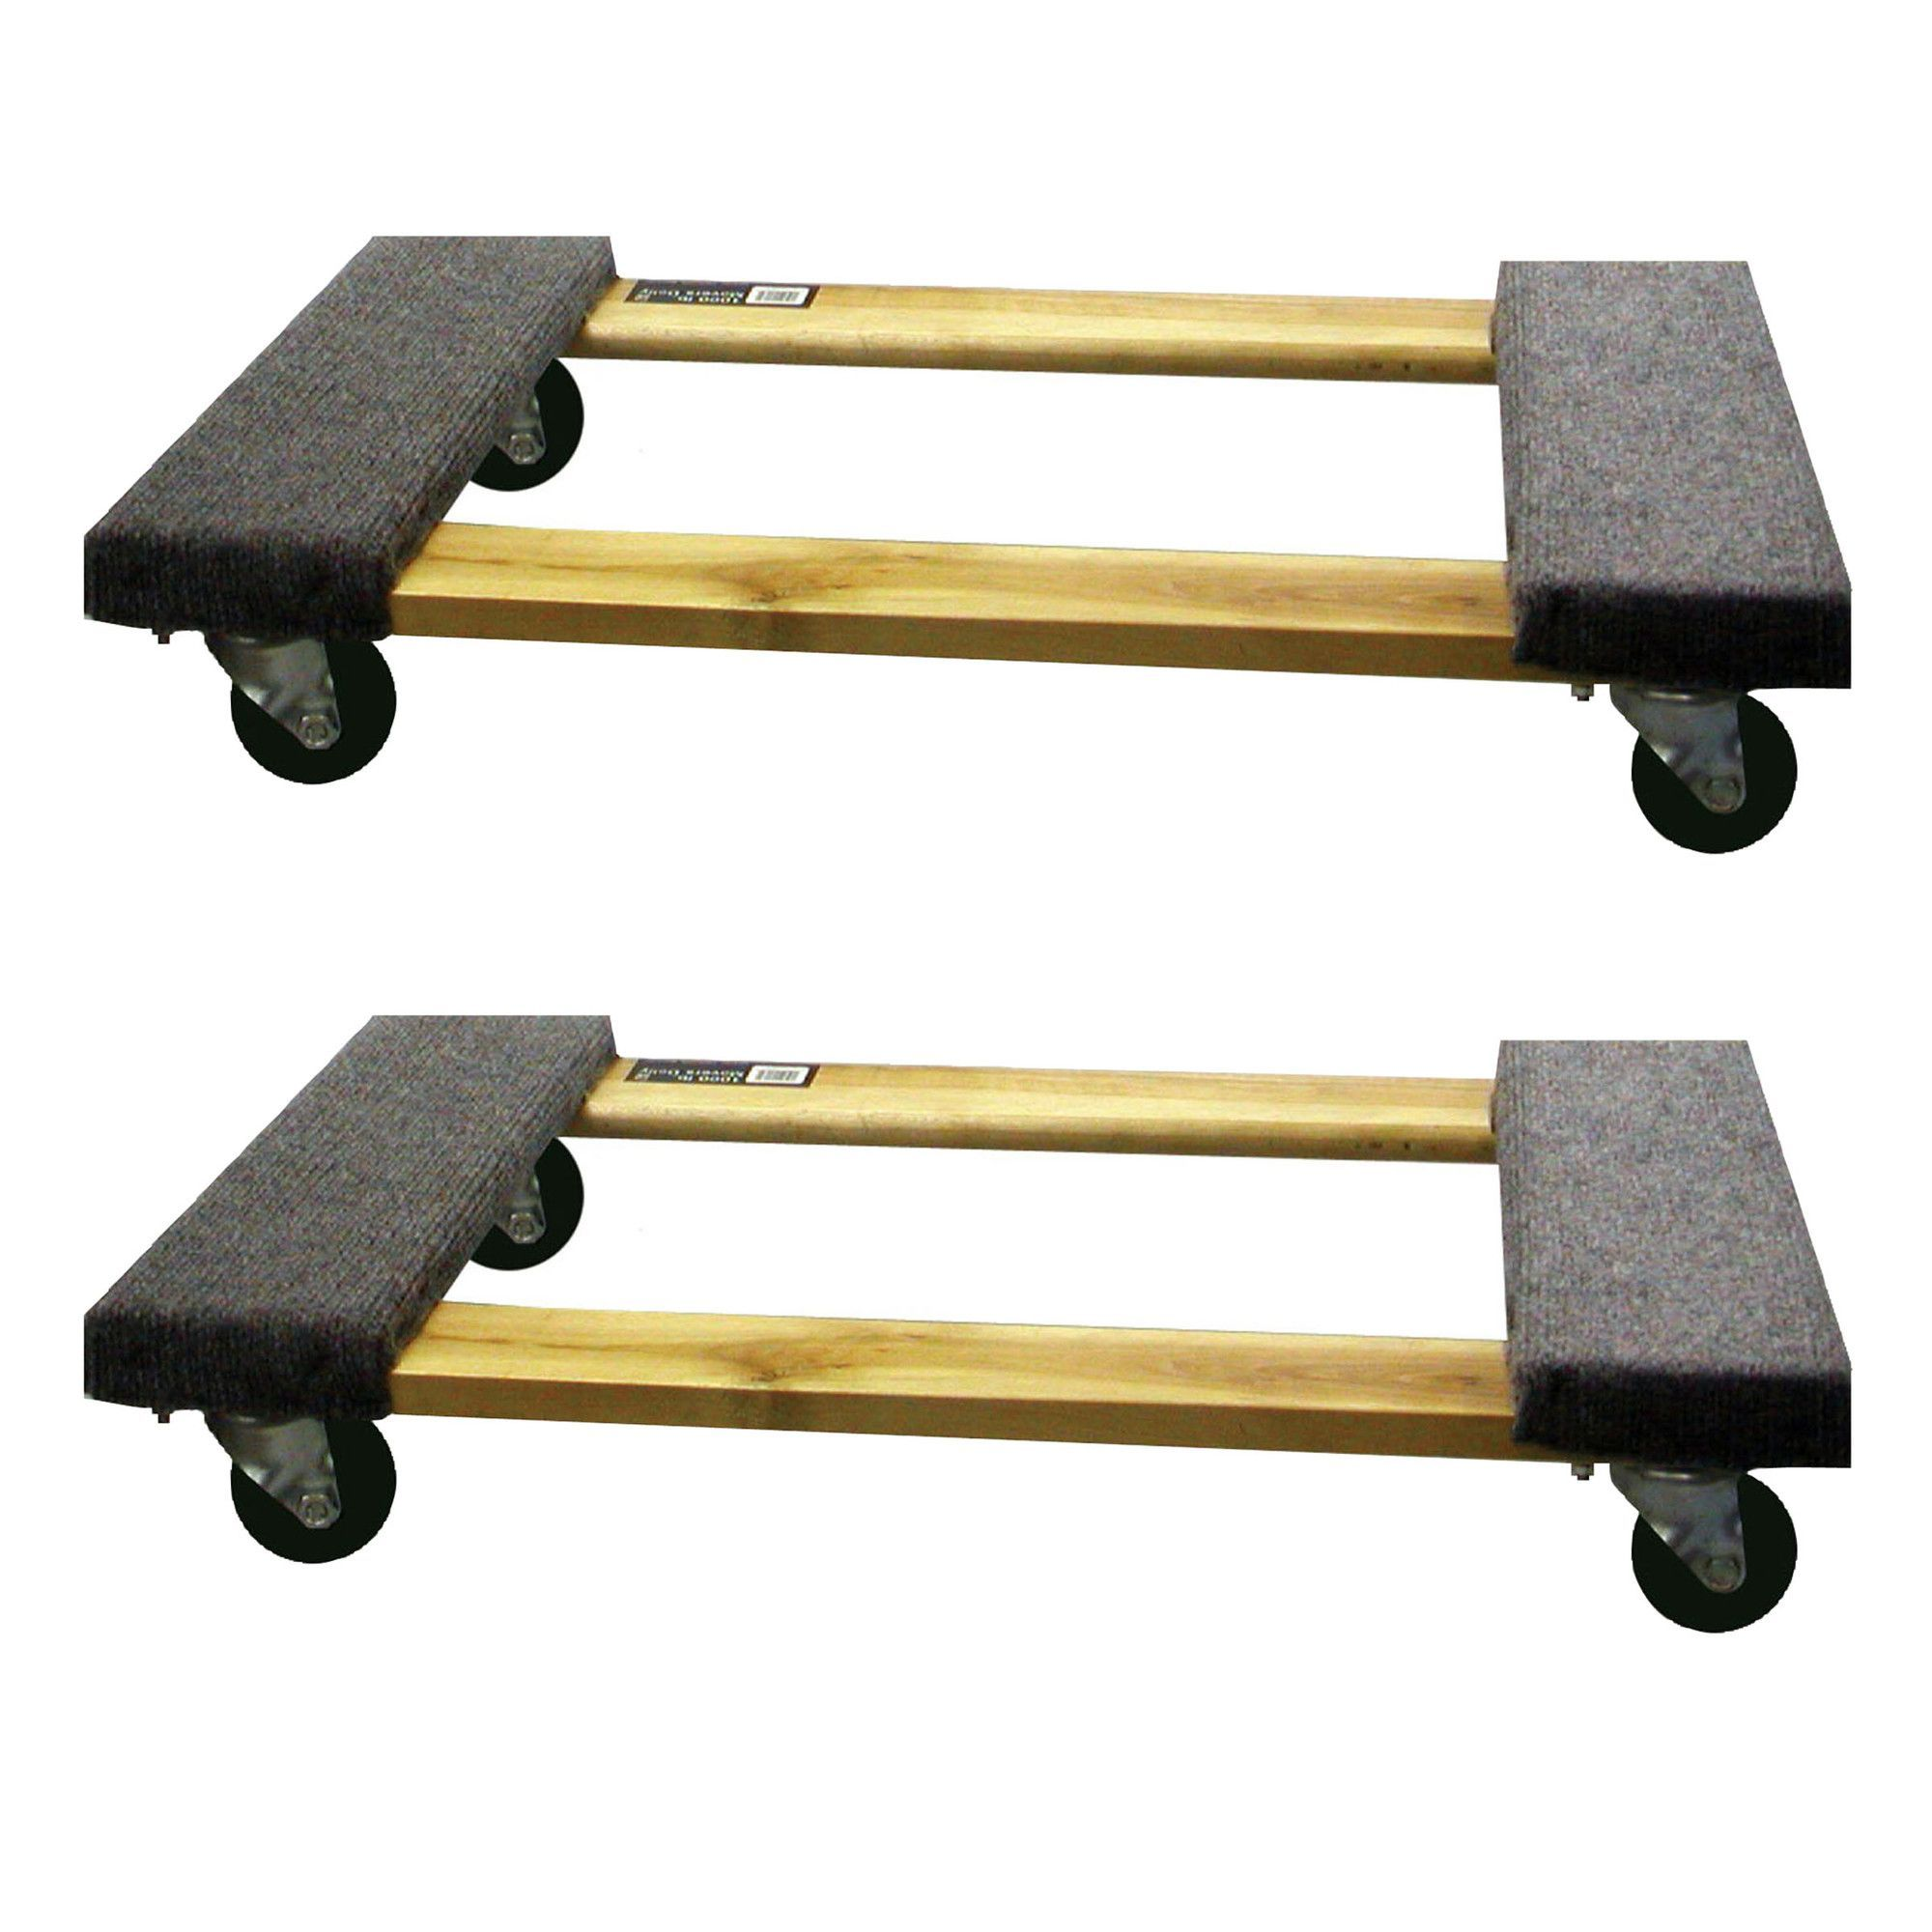 1000 Lb Capacity Furniture Dolly Furniture Dolly Furniture Inexpensive Furniture